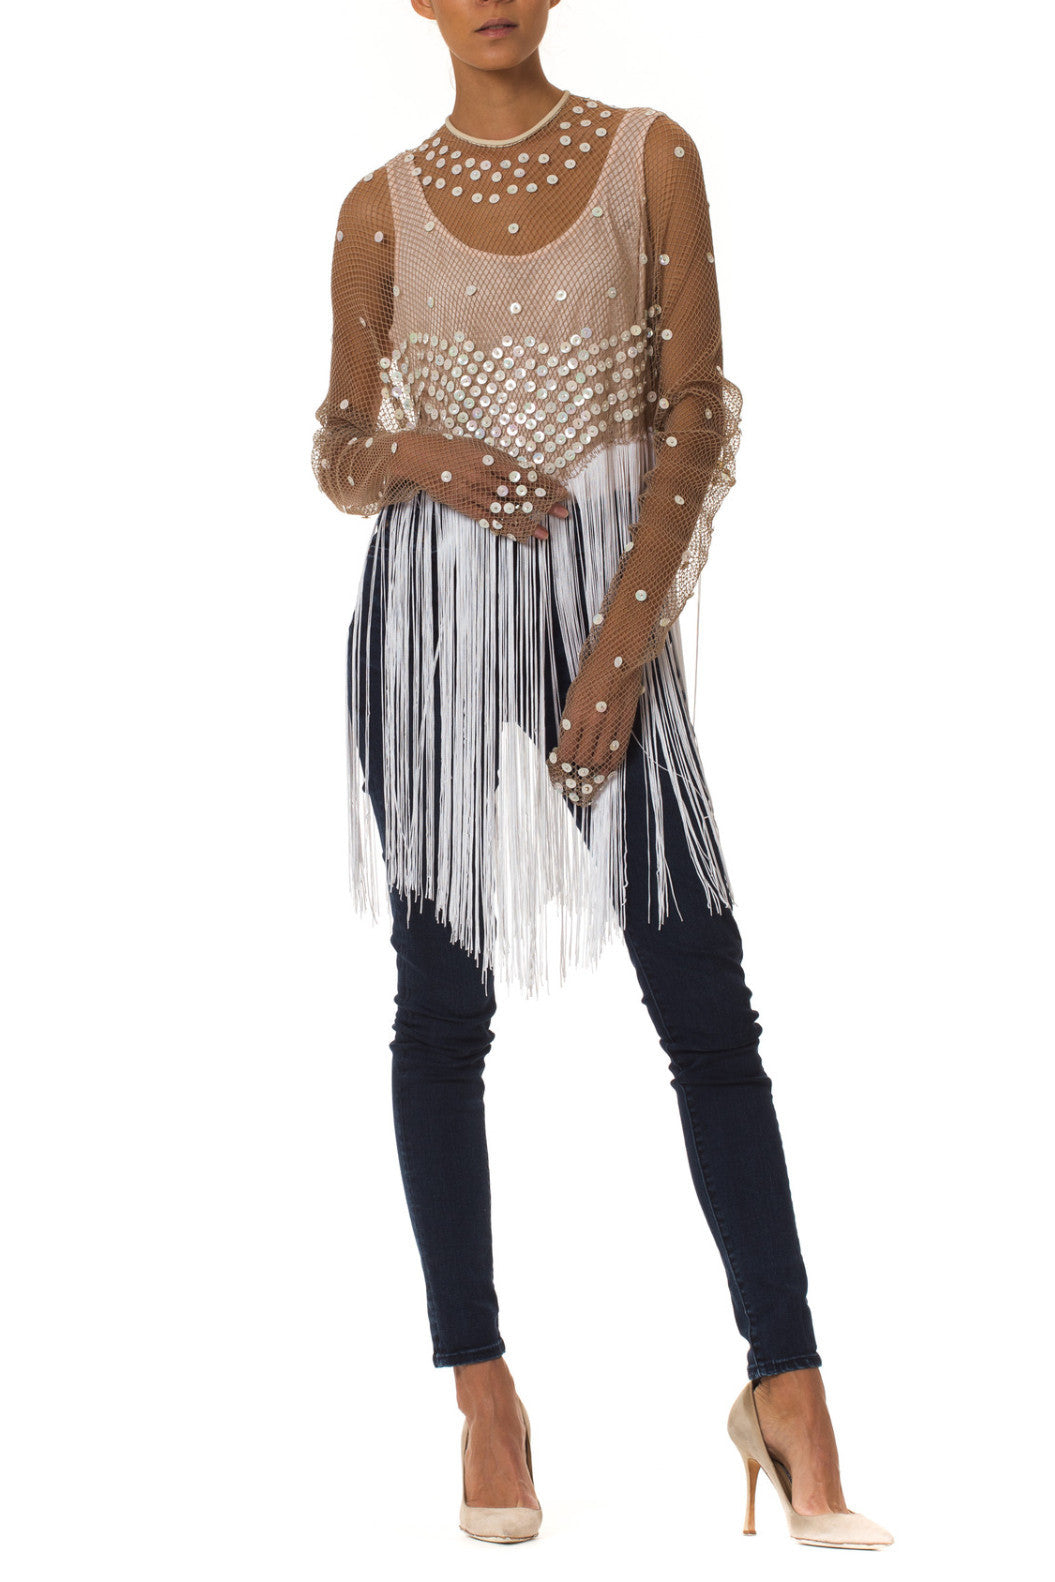 1960s Fab and Fun Fringe Fishnet Top